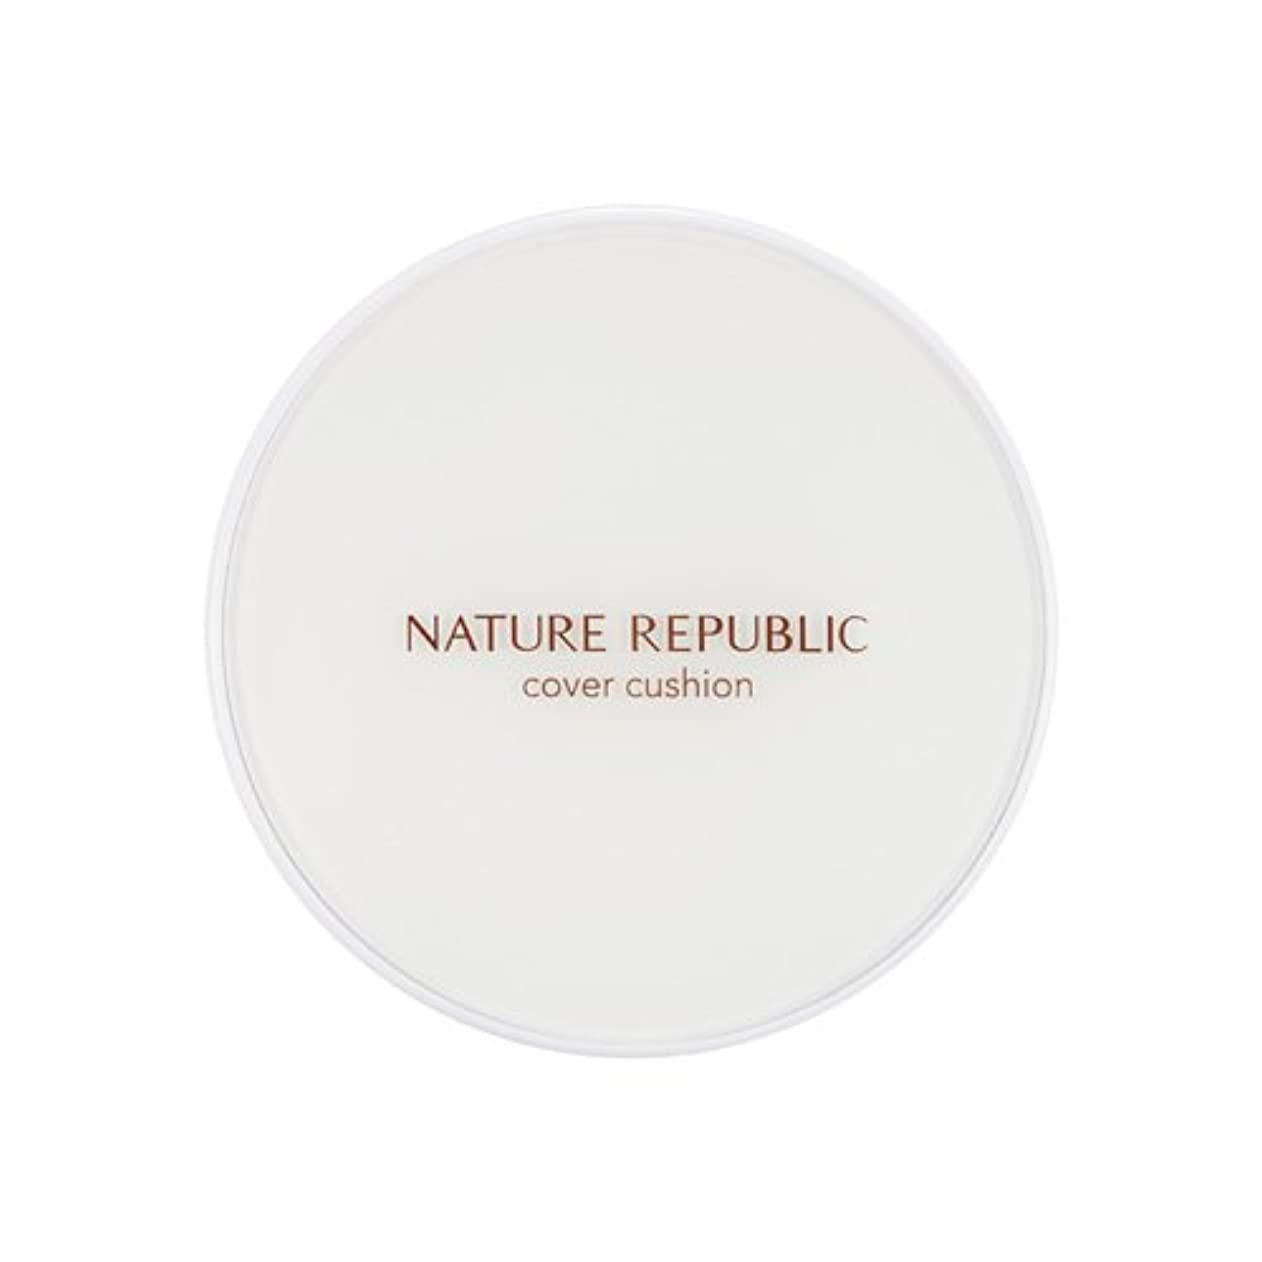 和解する代理人除外する[Outlet] NATURE REPUBLIC Nature Origin Cover Cushion (01 Light beige) (SPF50+ PA+++) [並行輸入品]